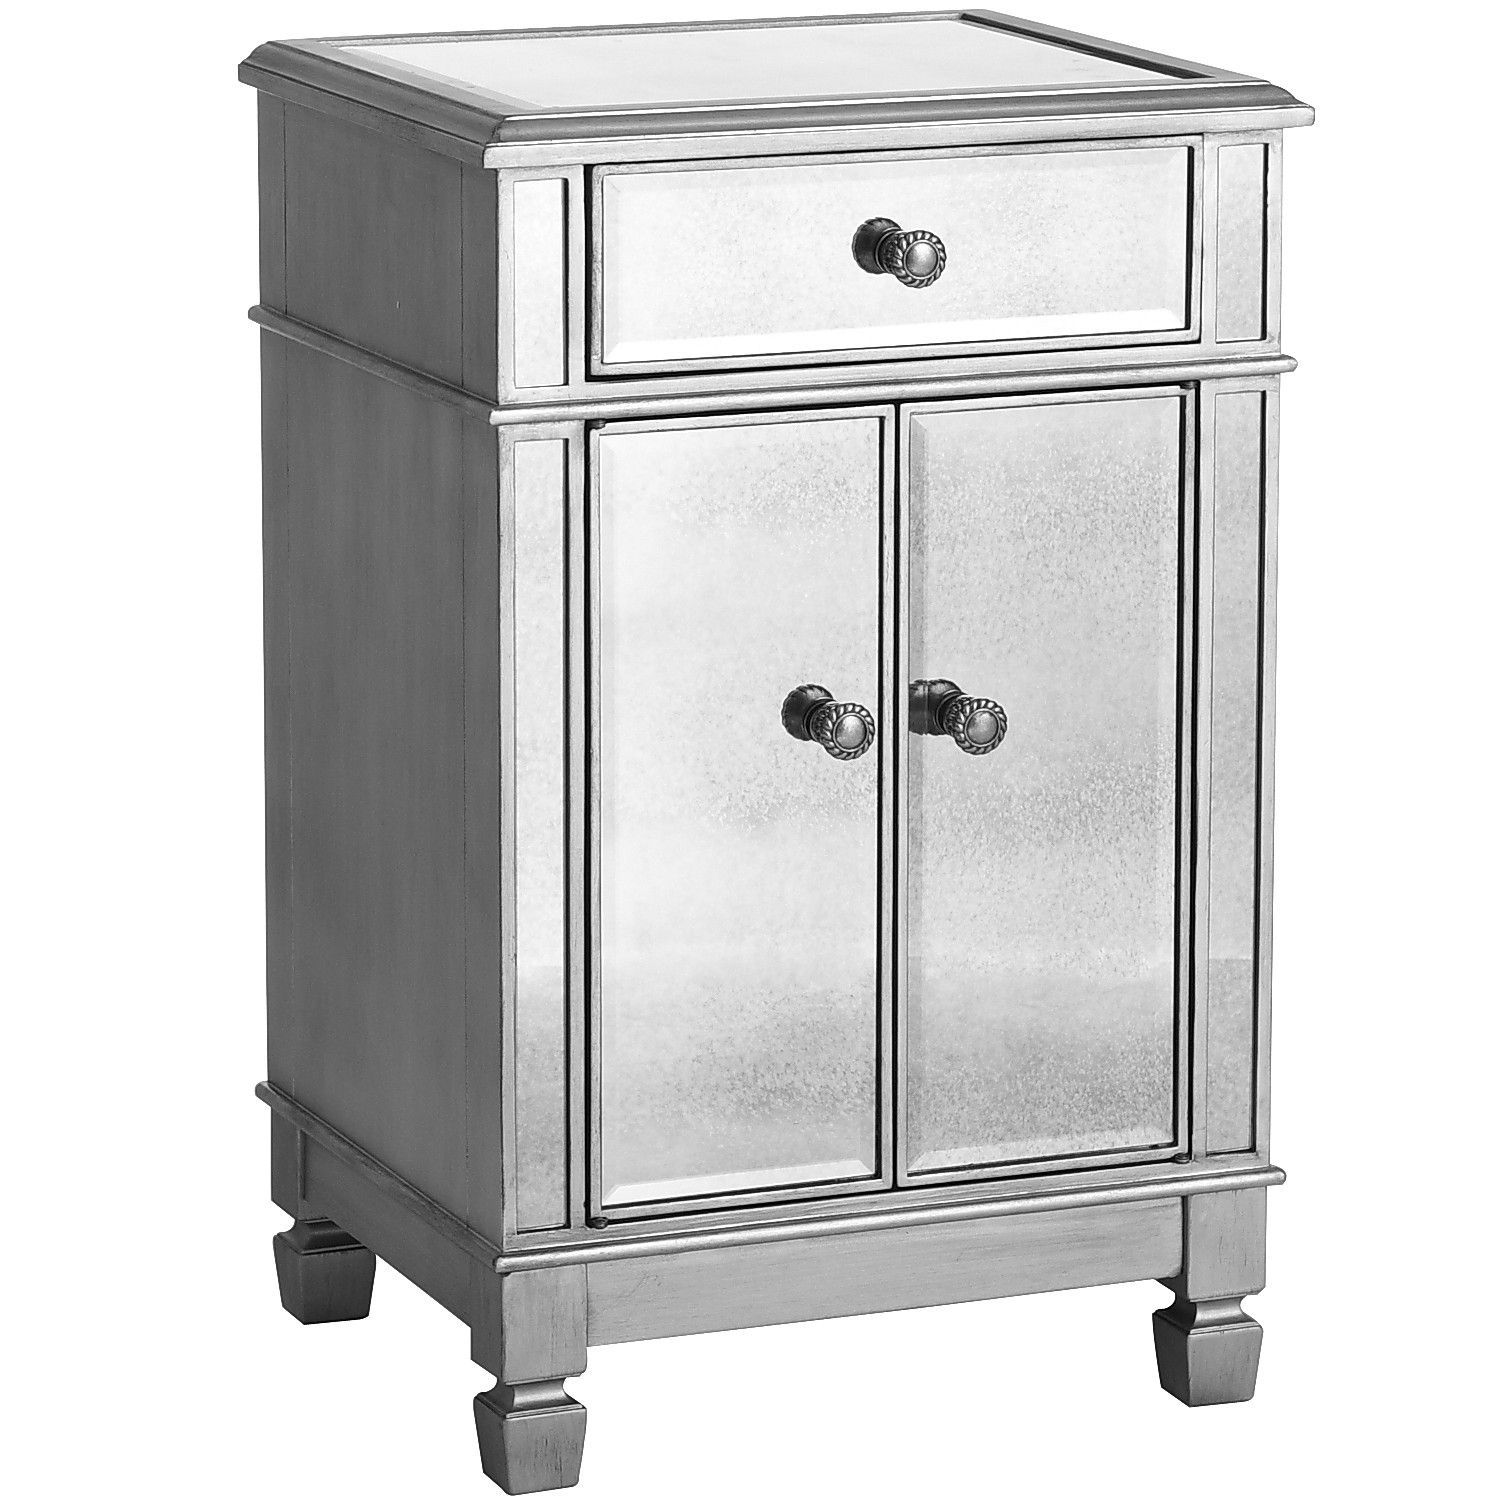 Hayworth Mirrored Silver Bedside Chest Bedside Chest Mirrored